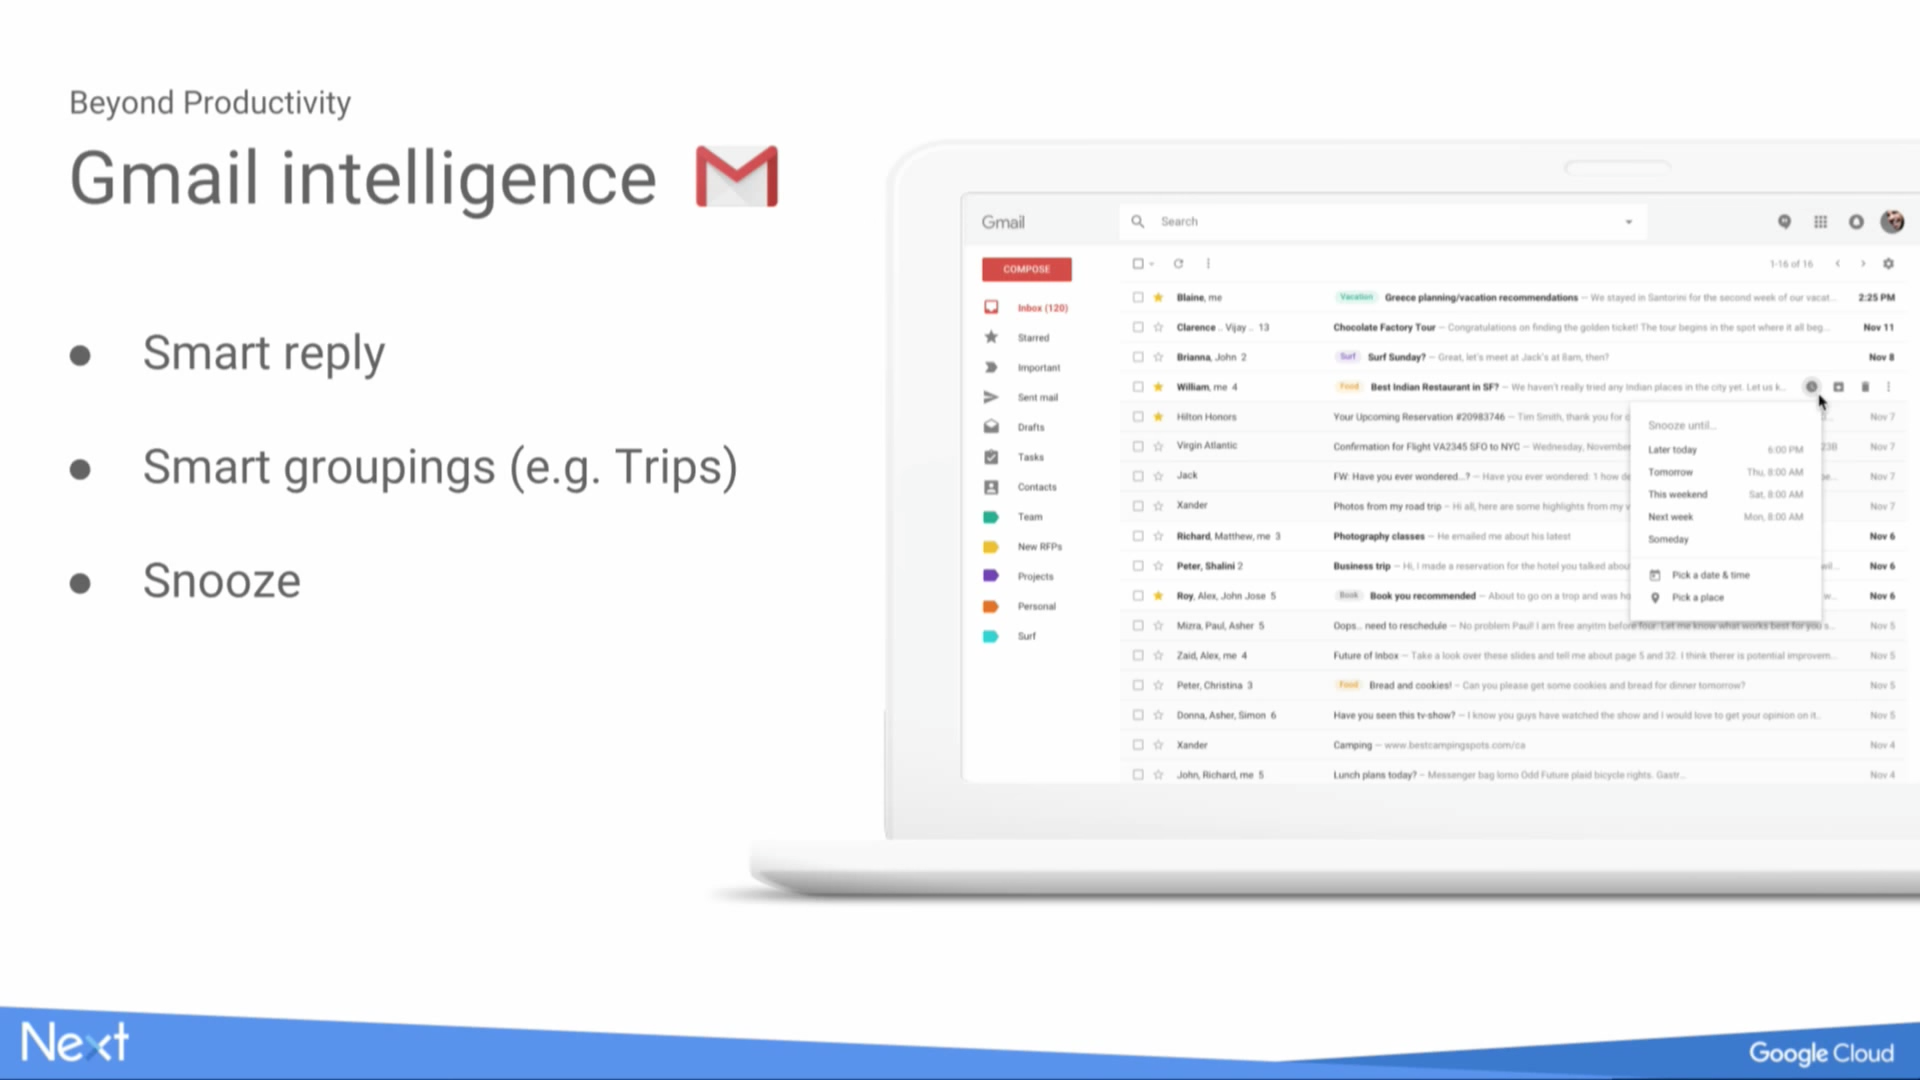 Gmail is working on snooze, smart grouping, and a Material